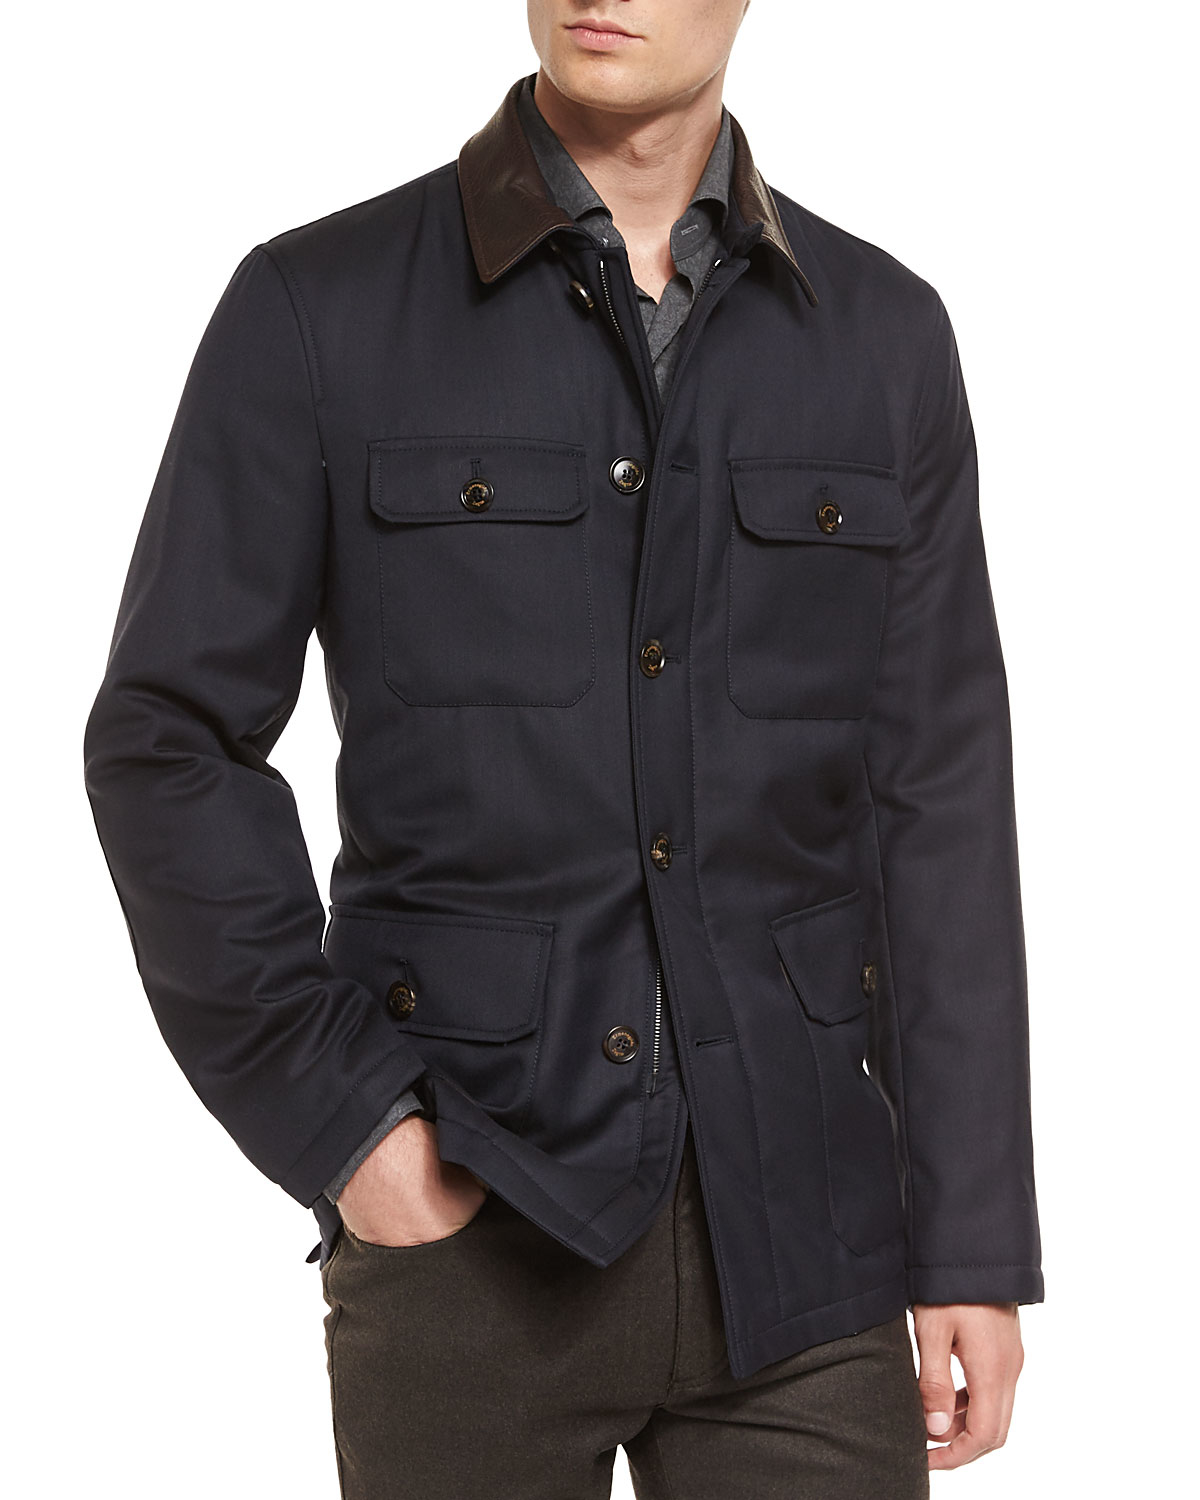 Cheap Abercrombie Fitch Clothing 09 New Abercrombie Mens Hoodies Best Abercrombie Fitch Clothing: Ermenegildo Zegna Wool Safari Jacket With Leather Collar